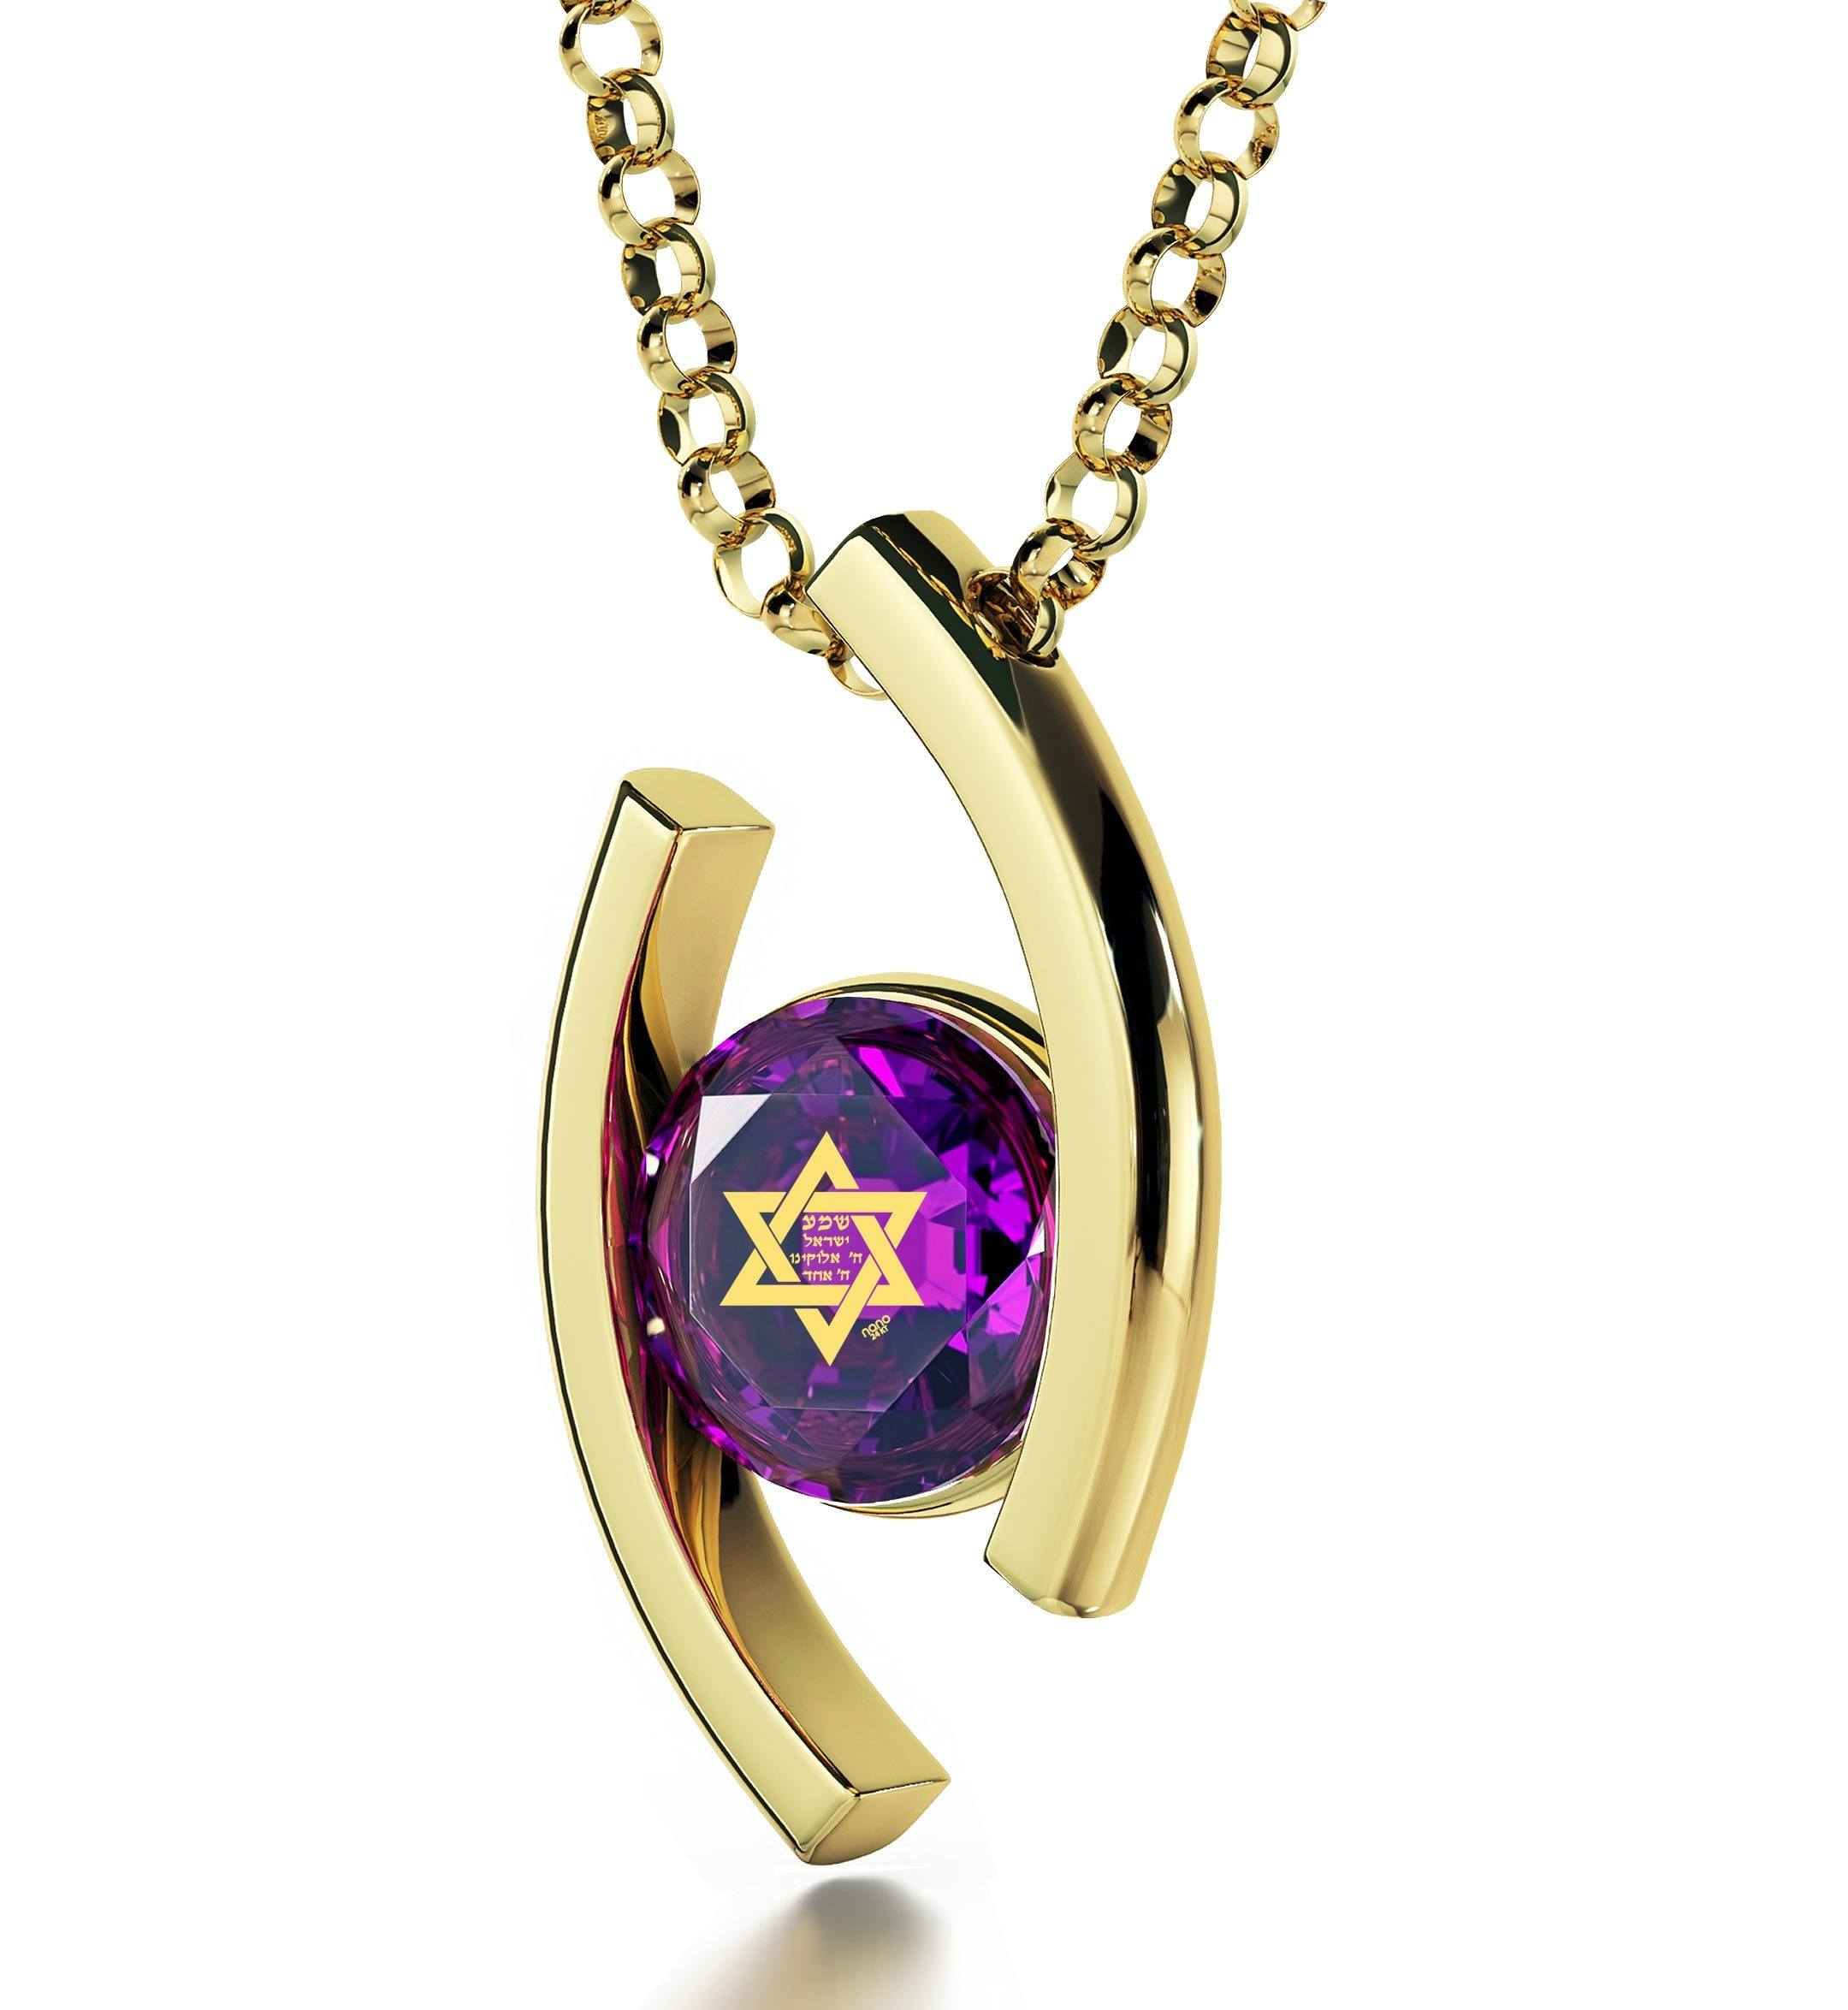 """Shema Yisrael"" Engraved in 24k, Jewish Necklace with Amethyst Pendant, Jewish Charms, Nano Jewelry"